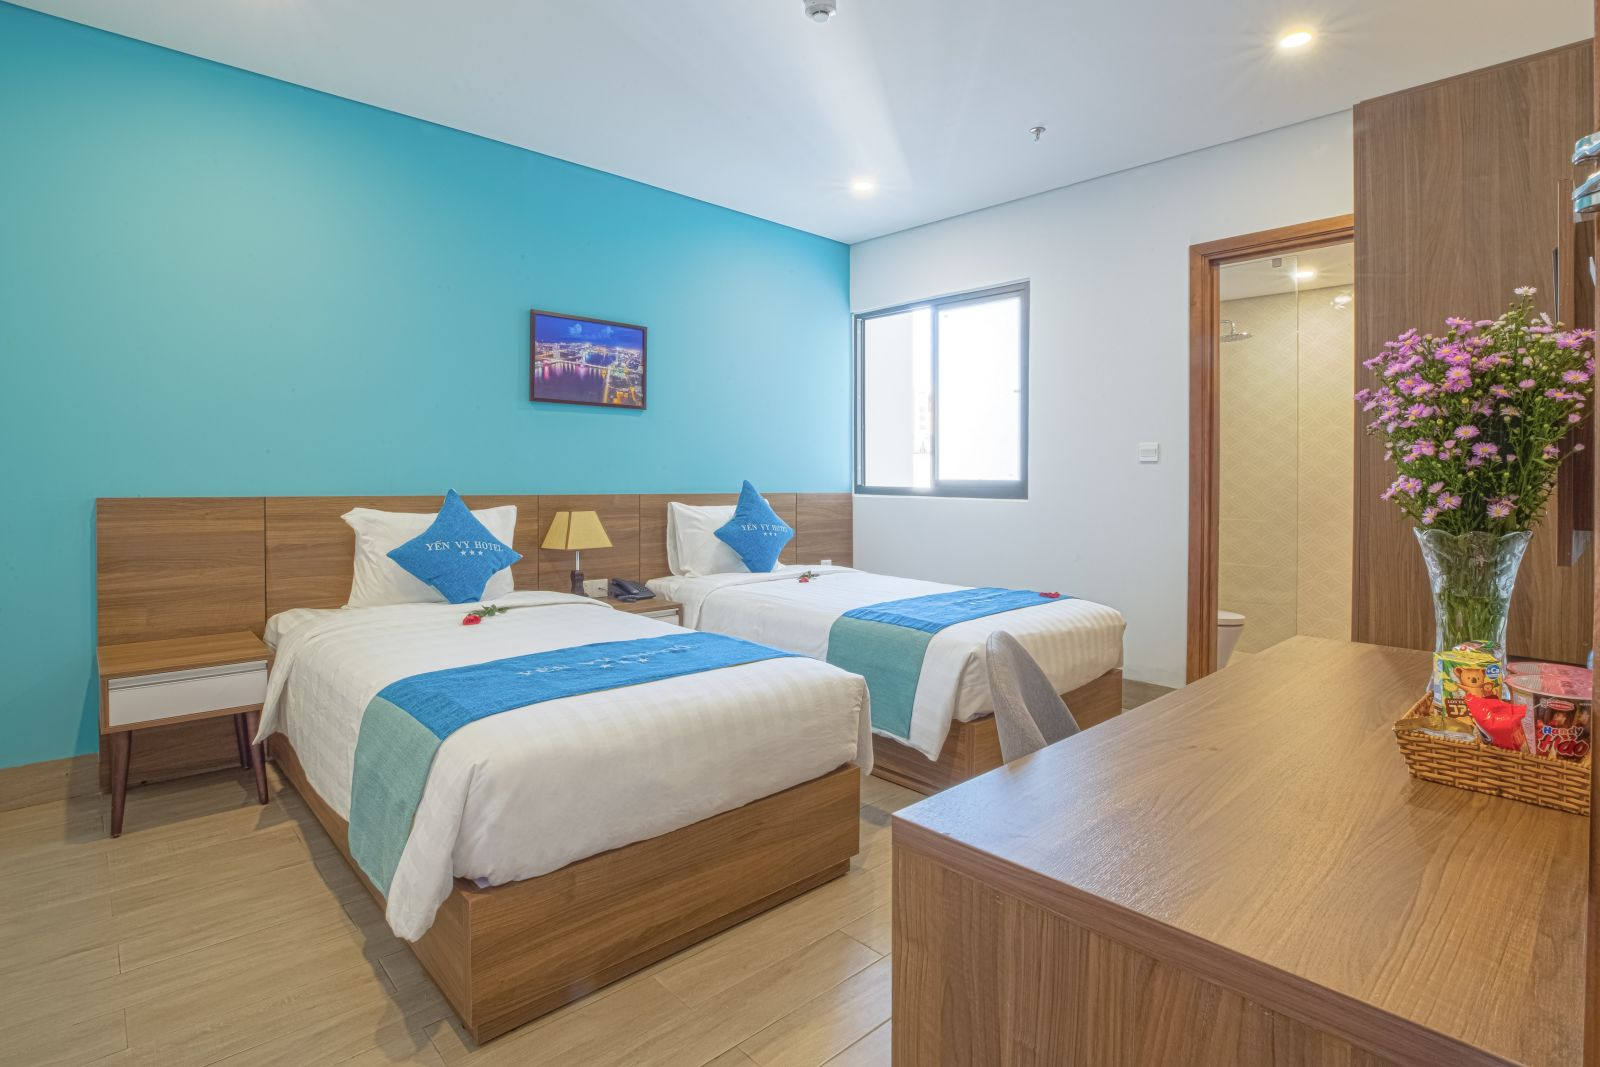 Deluxe Twin Room - Yến Vy Hotel